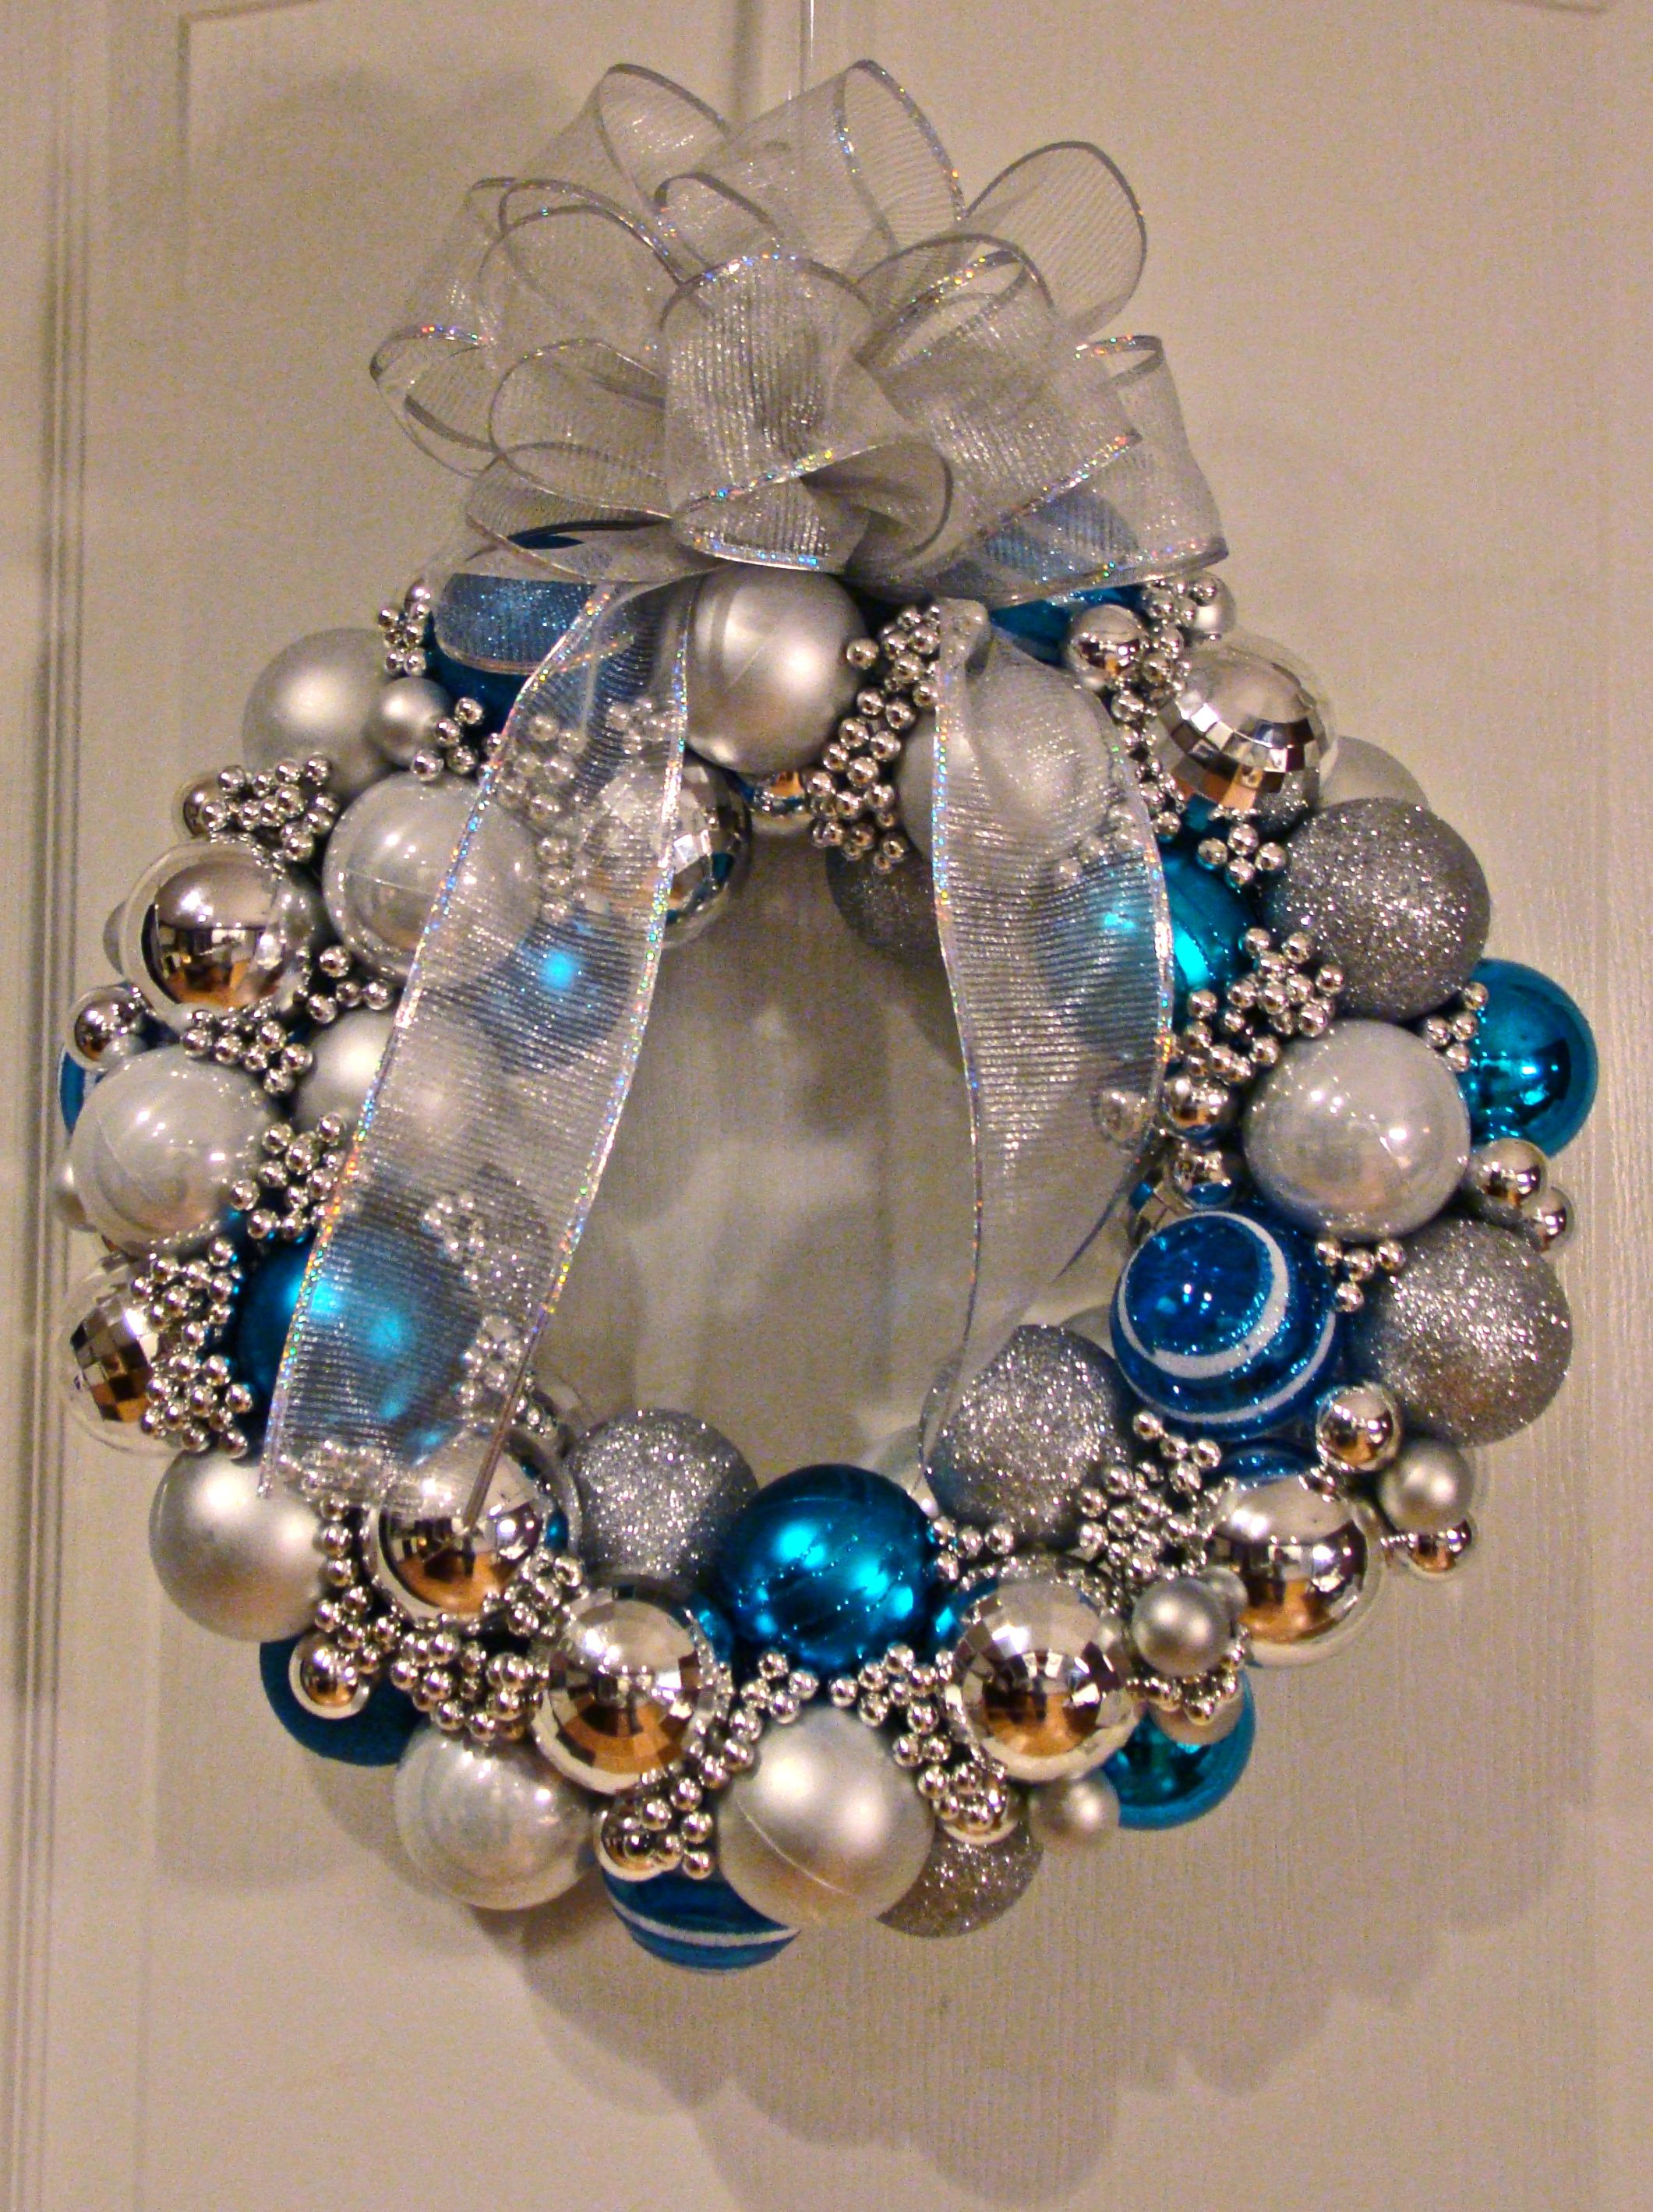 Christmas Ball Wreath Tutorial Christmas Wreaths Christmas Ornament Wreath Diy Christmas Ornaments